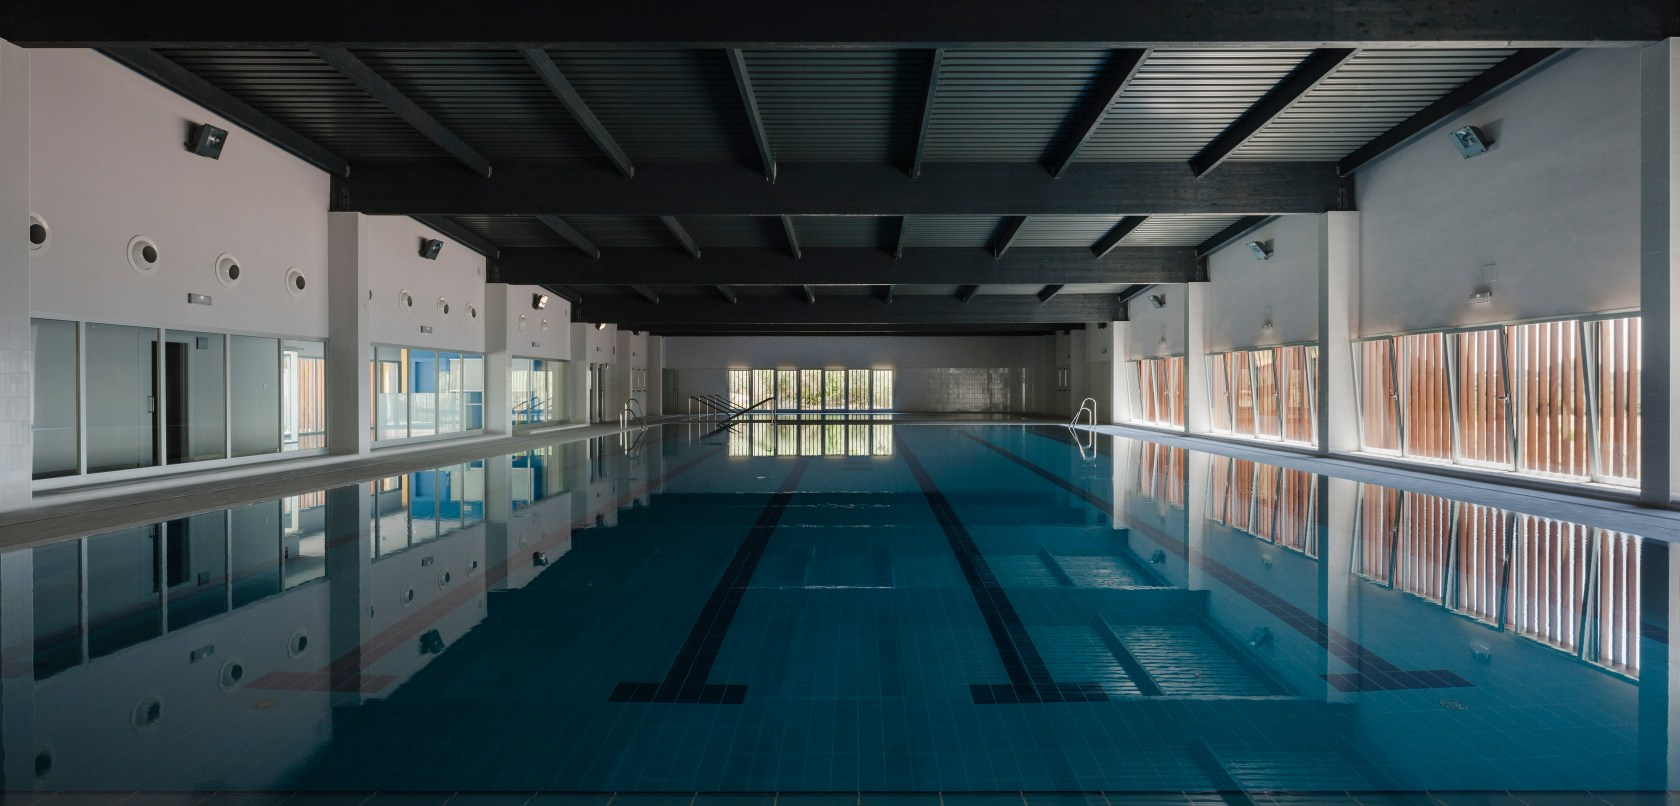 Piscinas Municipales Sevilla Municipal Indoor Pool In Constantina Seville Architizer